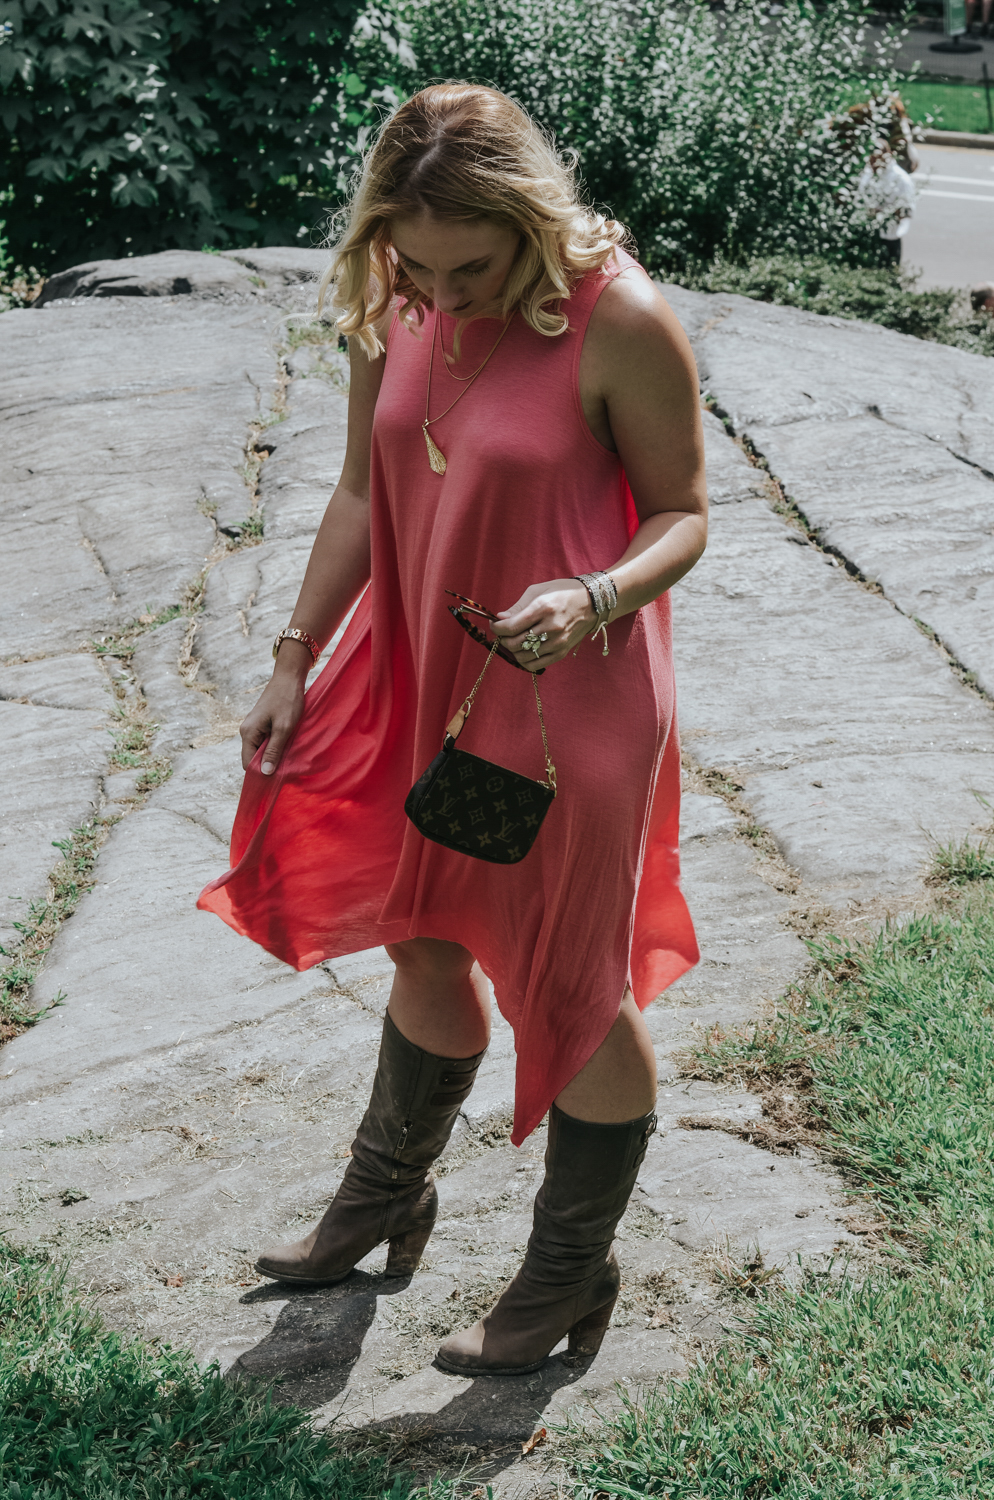 New York Fashion Week Look: Coral Maxi Dress and Distressed Boots - the perfect summer to fall transition look.